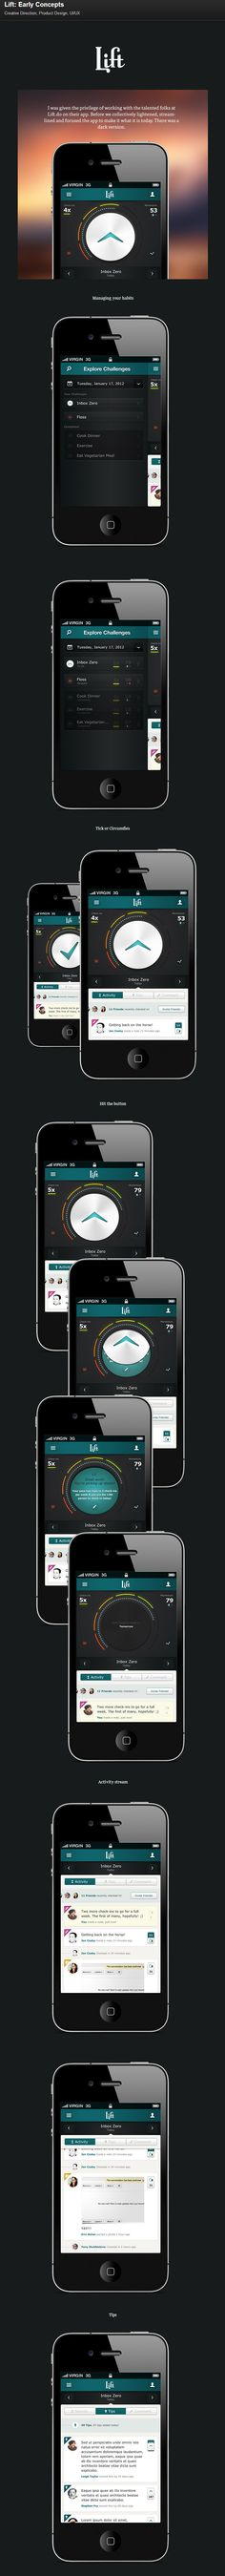 Lift: Early Concepts #UI #UX #Mobile #Application